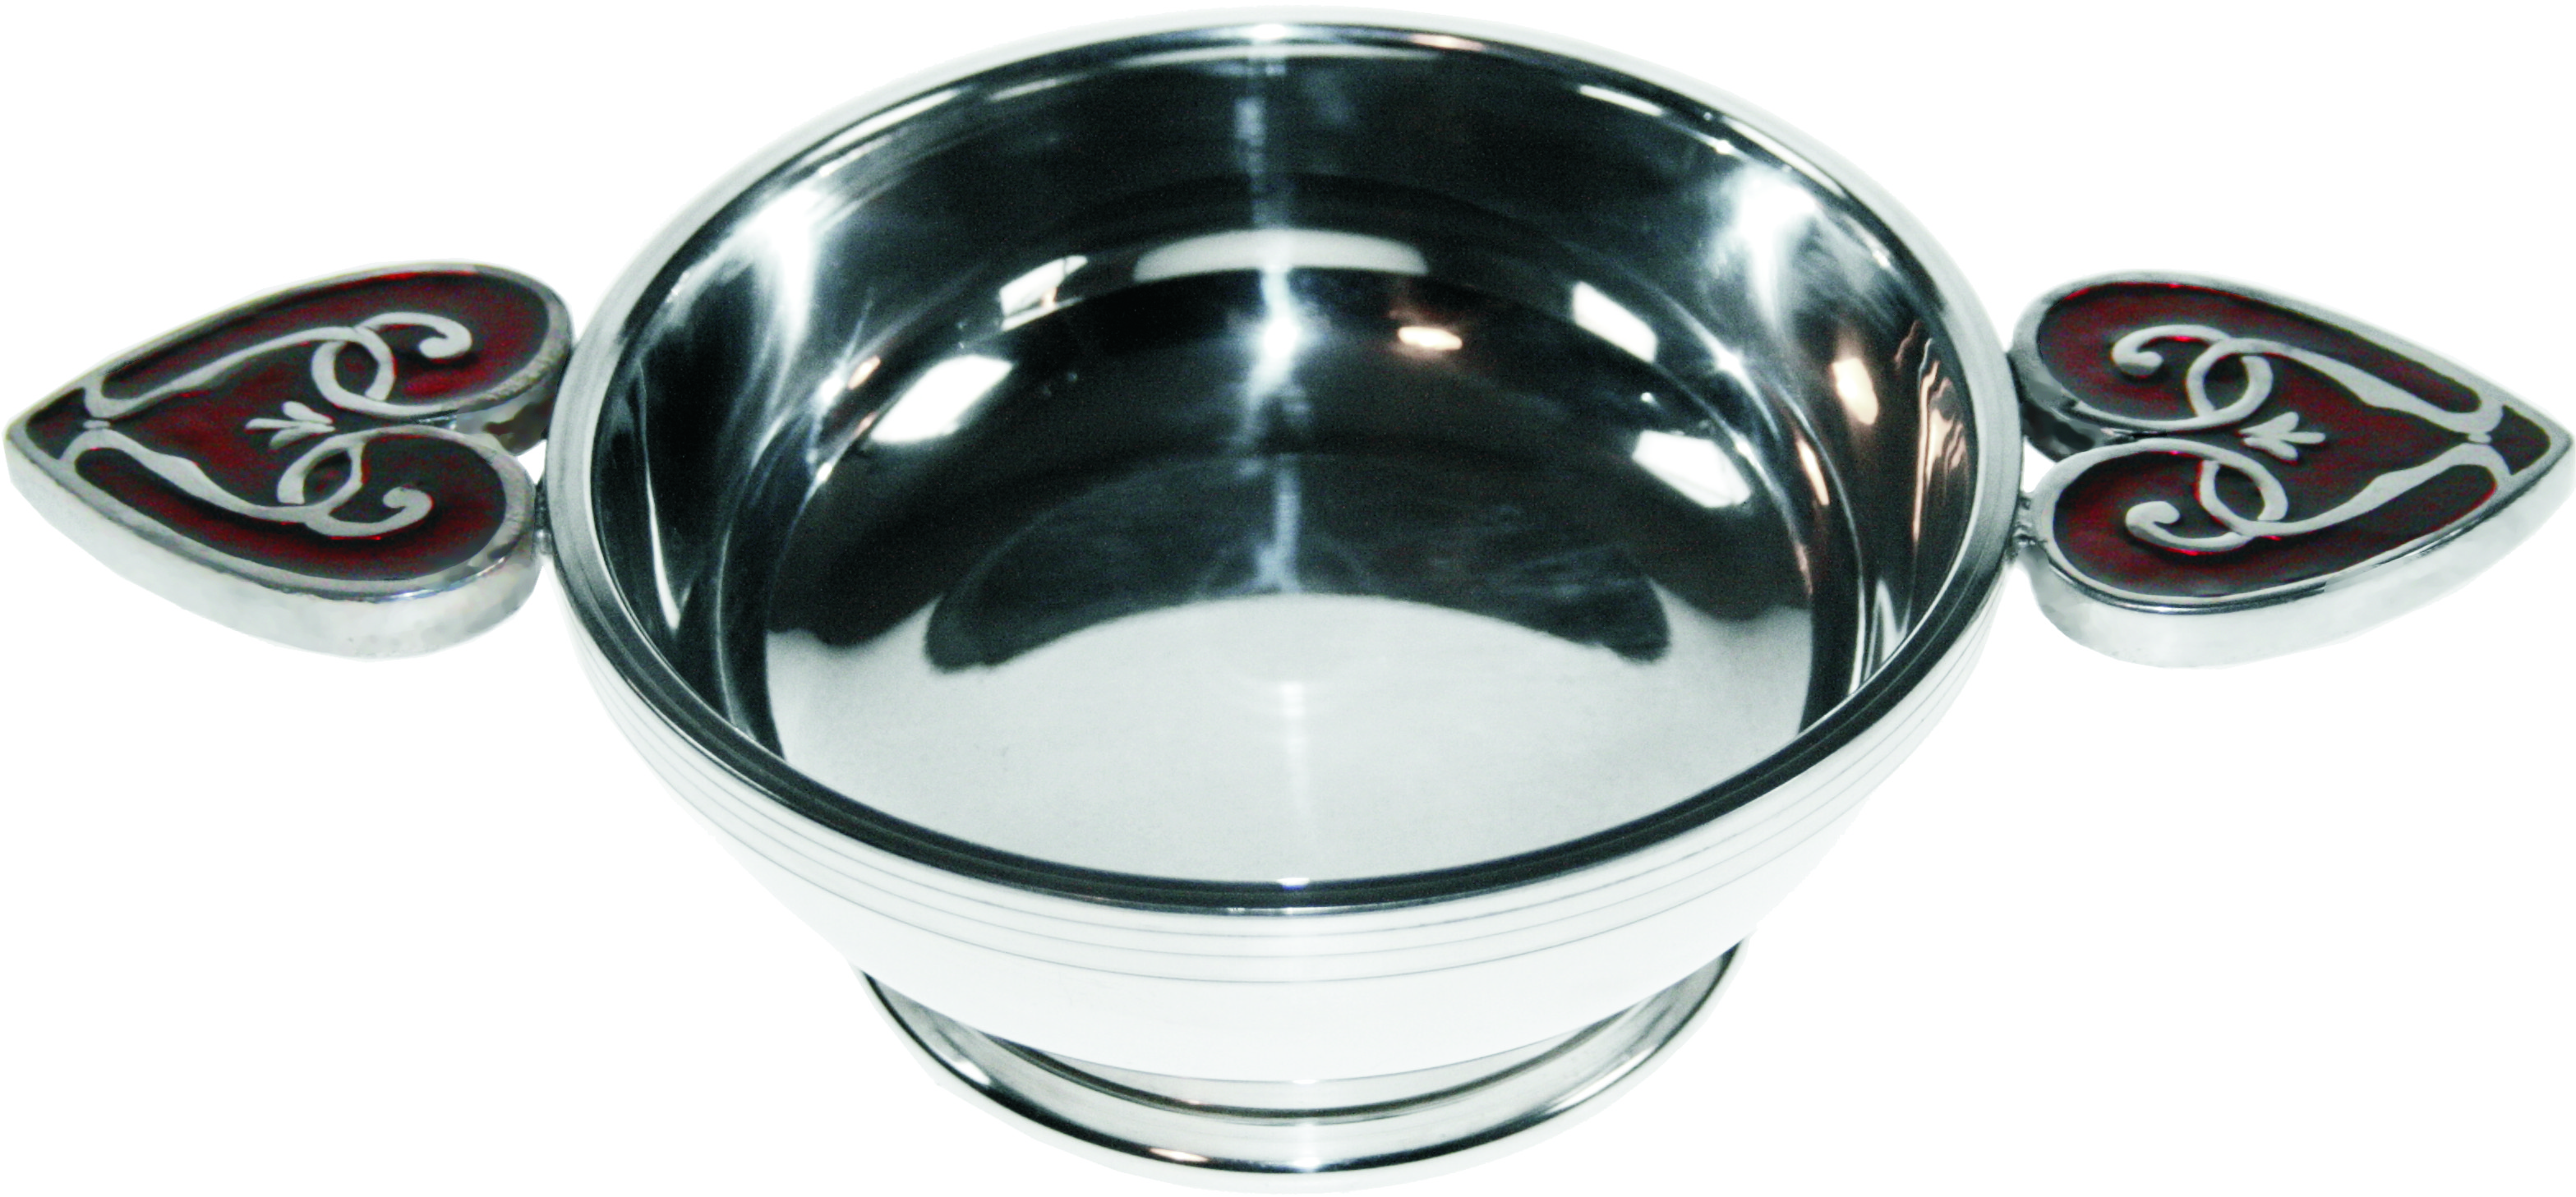 "Heart of the Highlands Pewter Quaich Bowl 11.5cm (4.5"")"